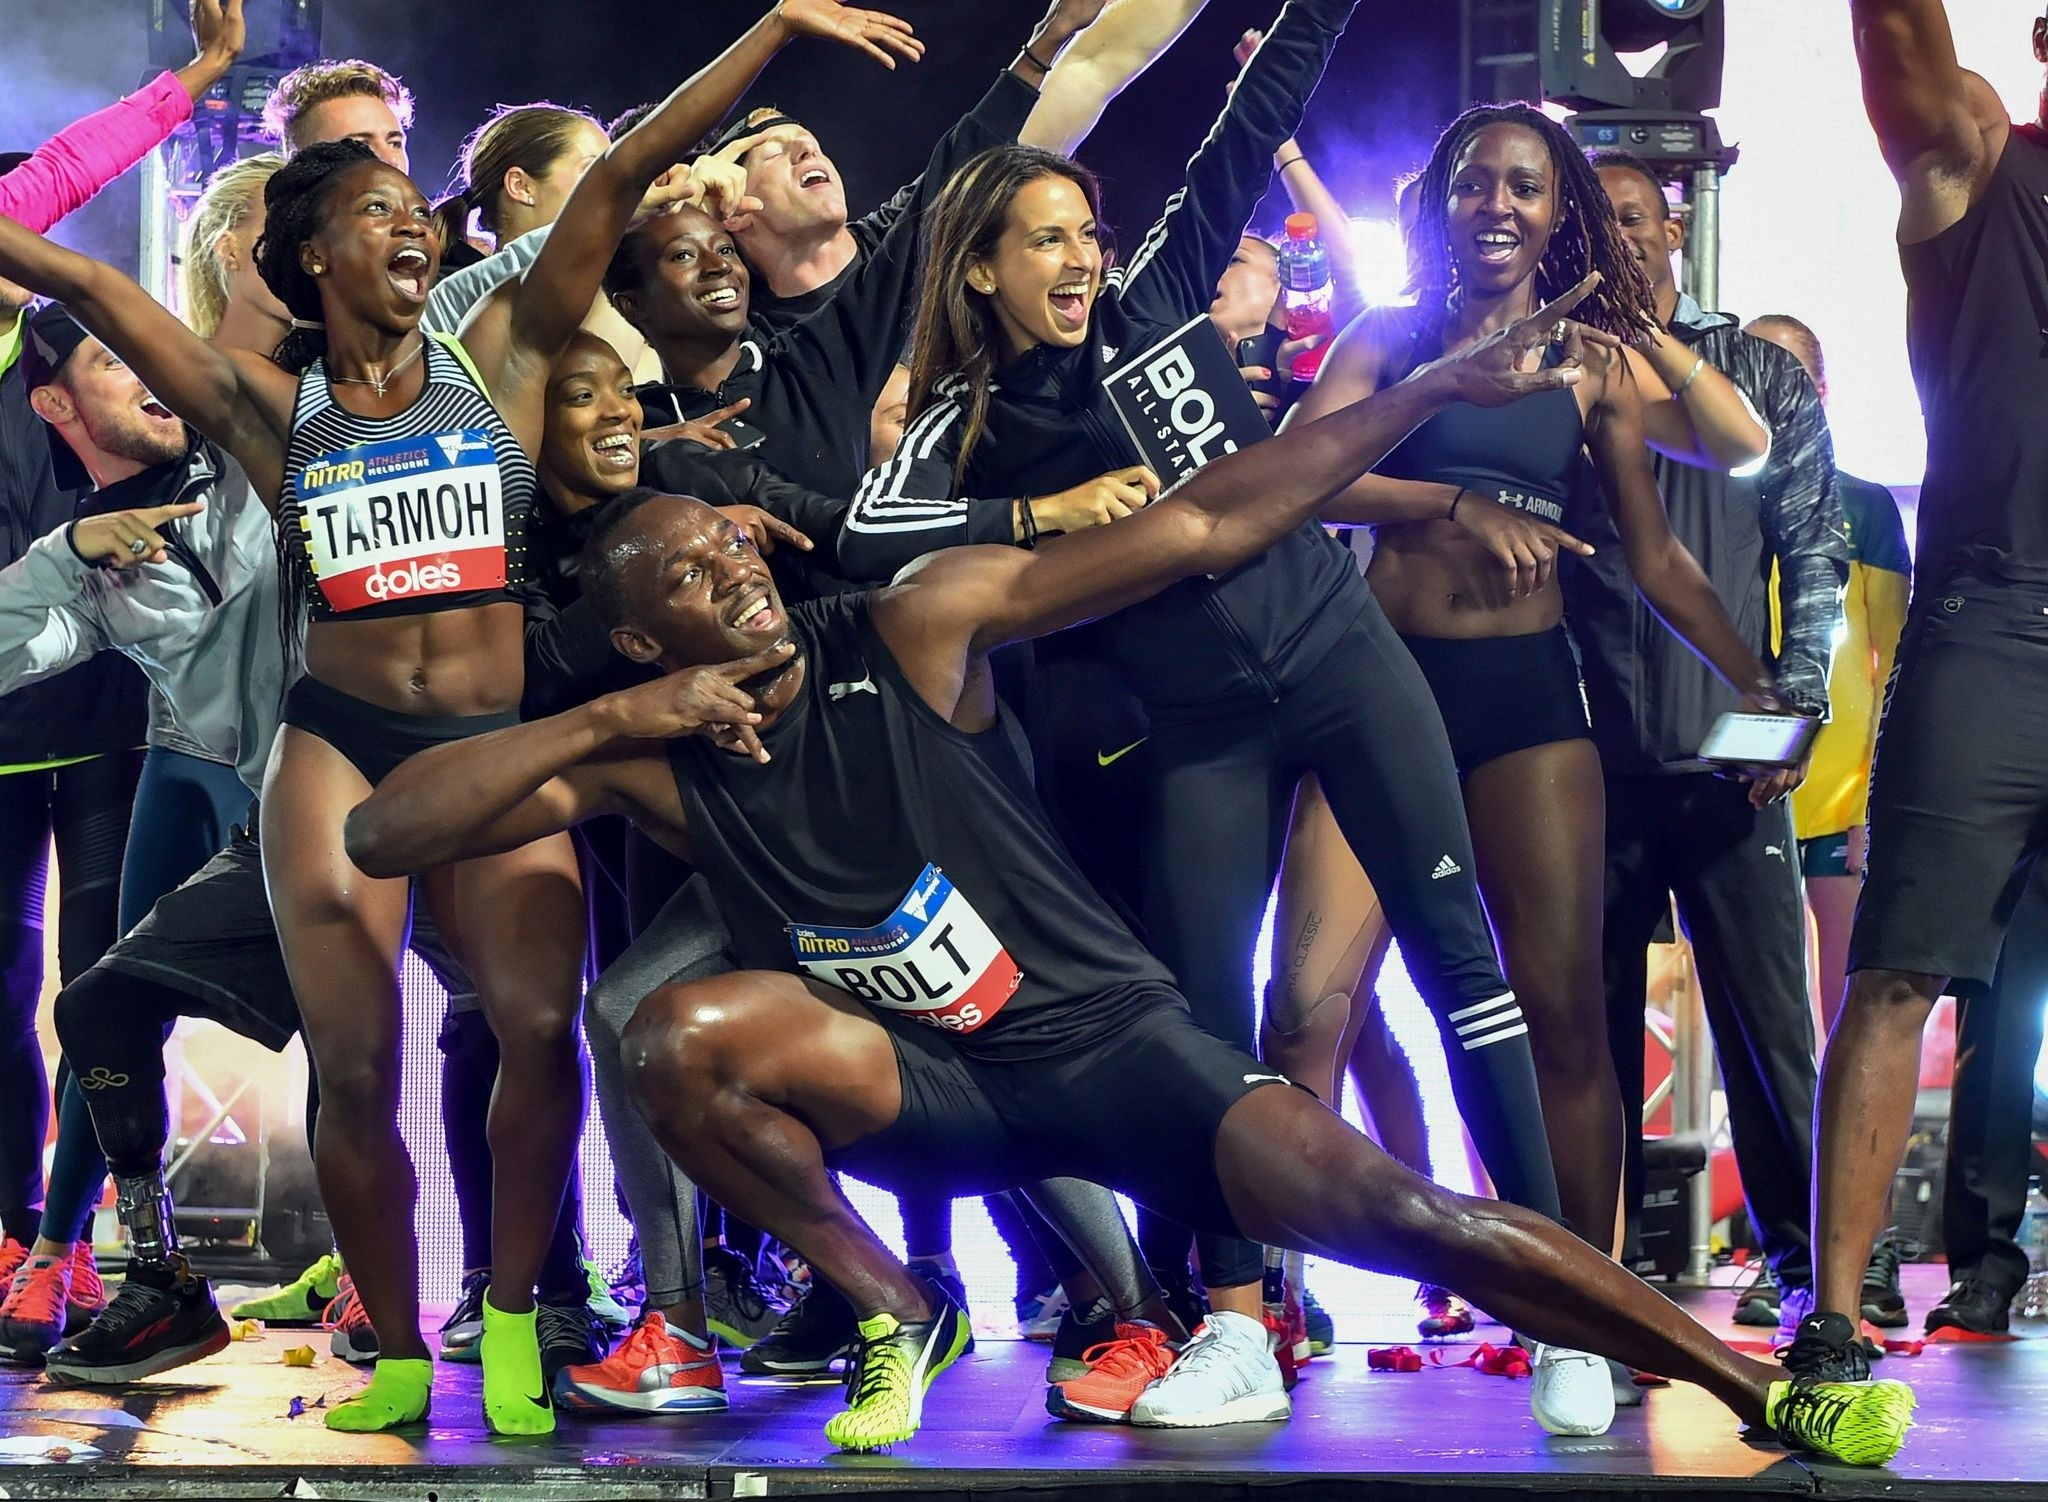 Bolt All Stars celebrate after winning the Nitro Athletics meet in Melbourne on February 11, 2017. (AFP Photo)